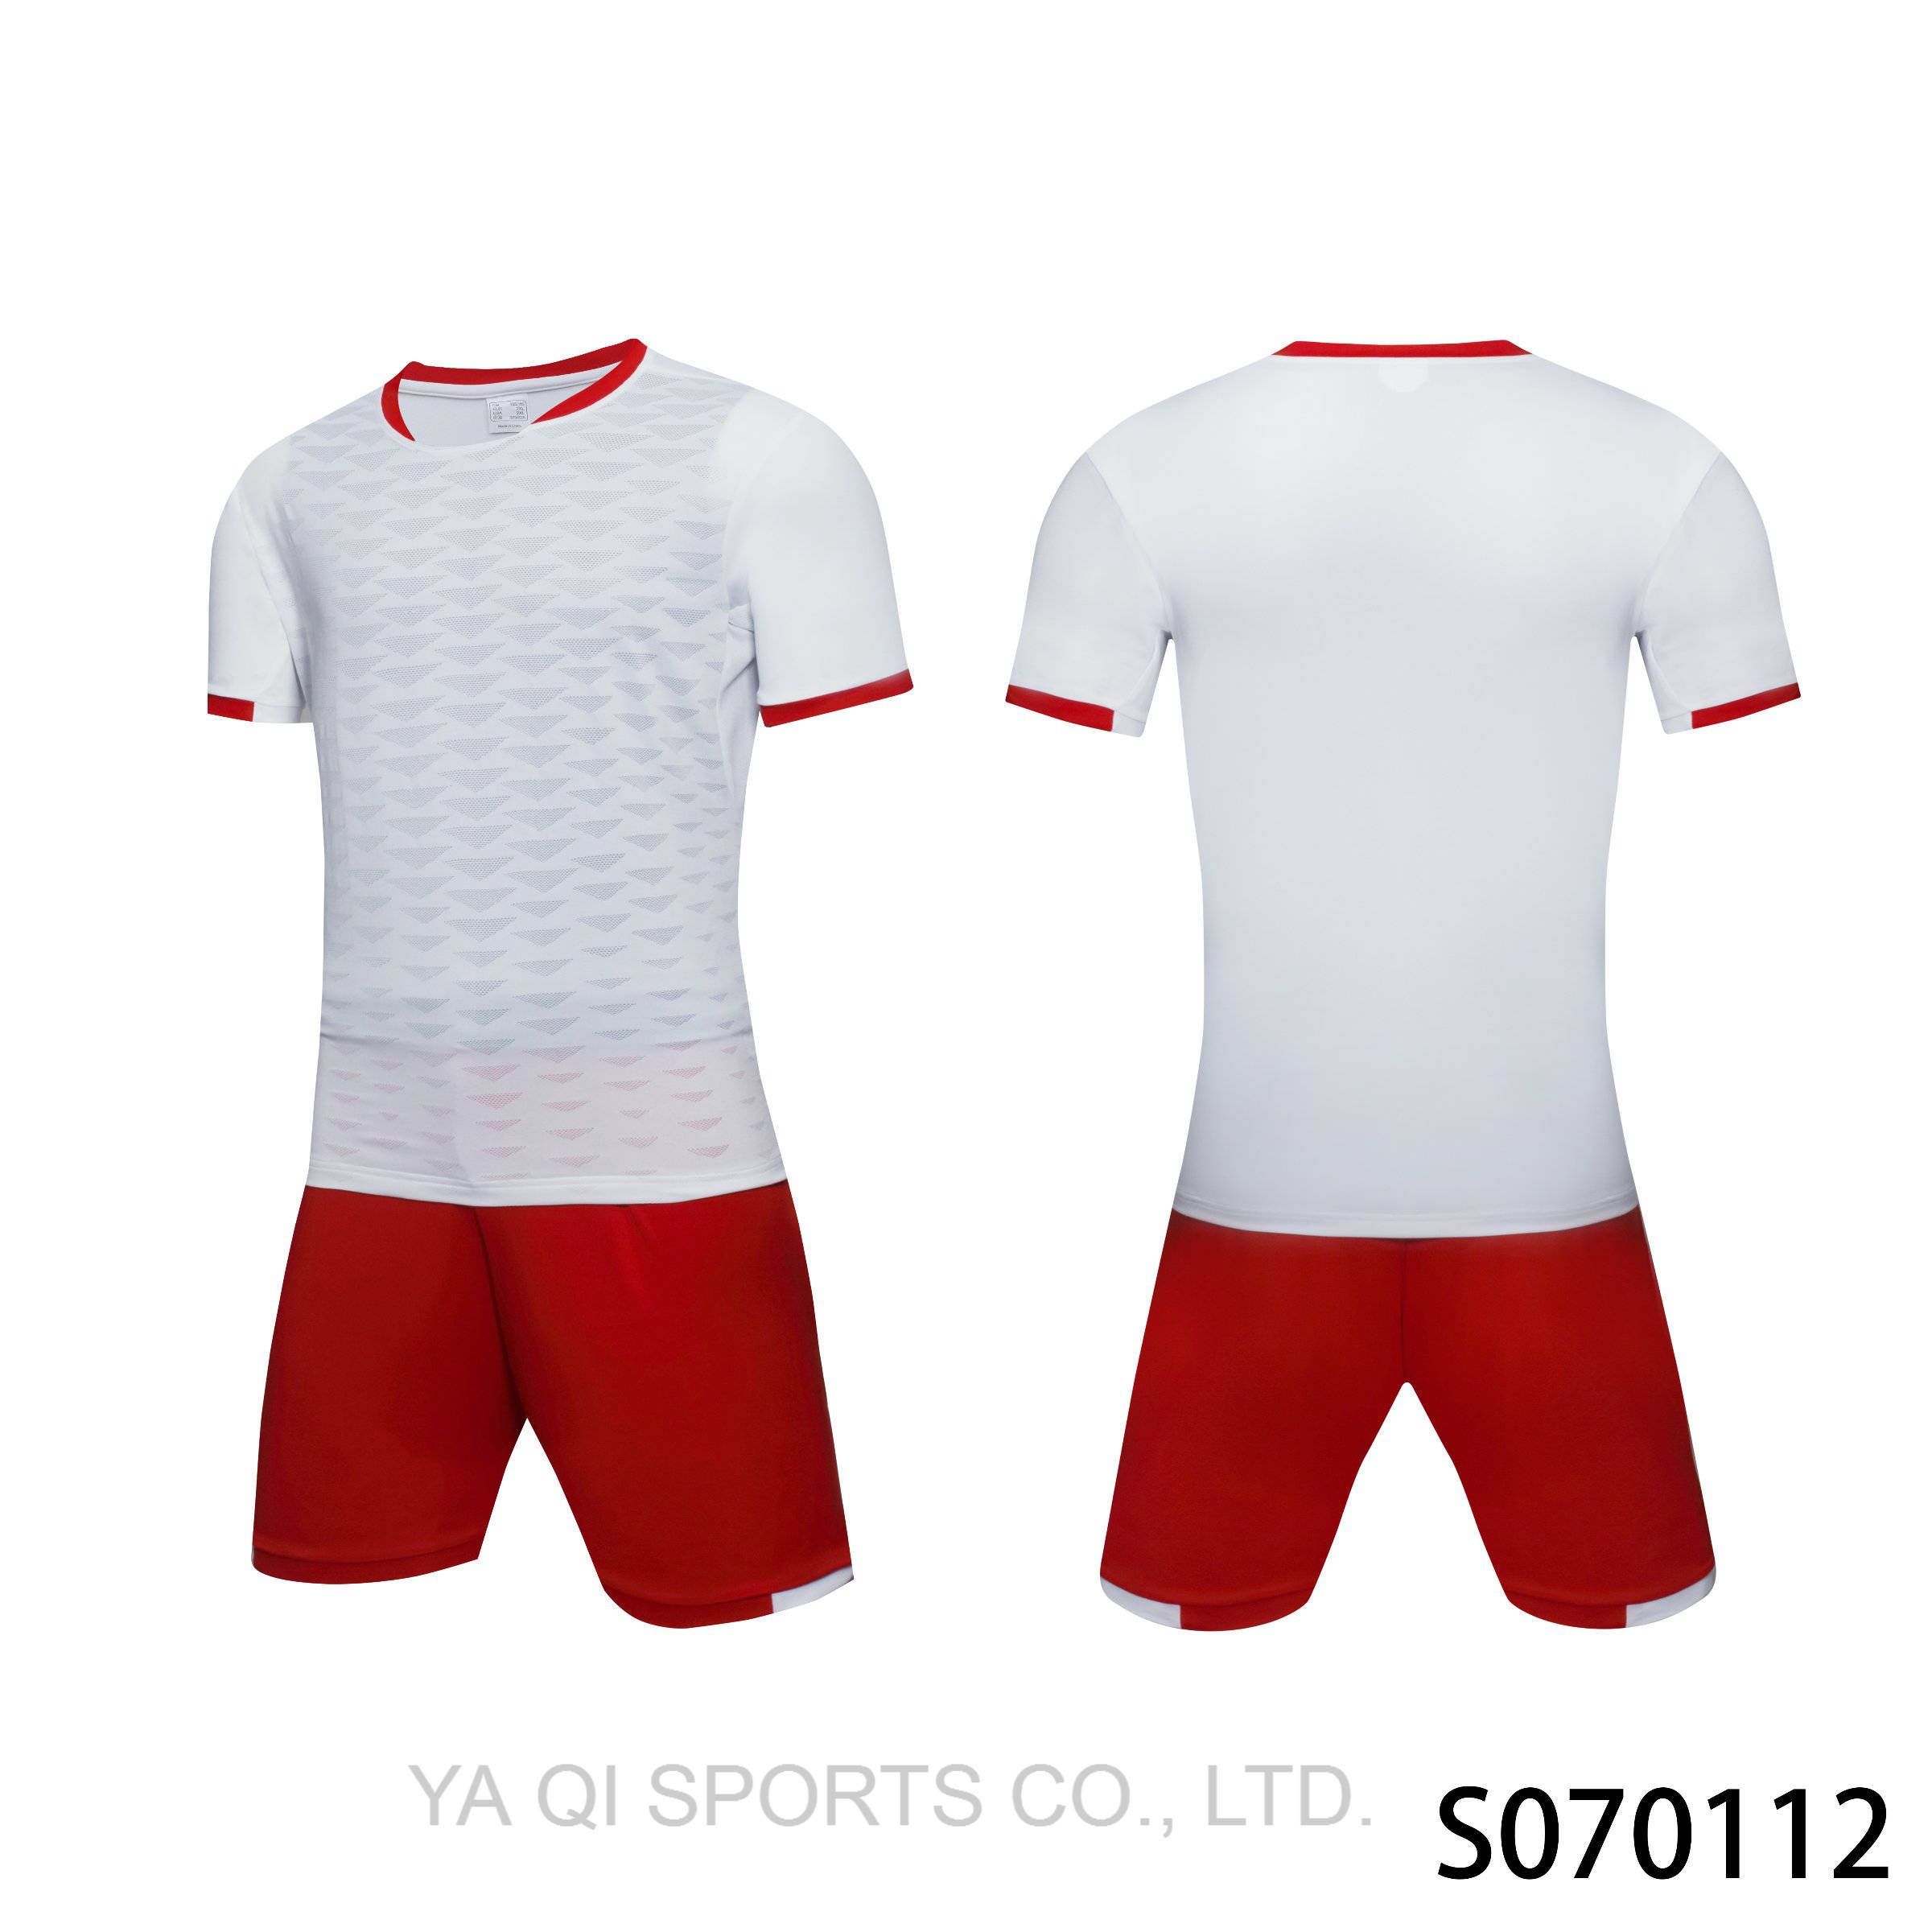 aefc577f8 2017 New Design Training Soccer Club Uniform Sets Top Quality Men Soccer  Jersey Sets Blank Jersey Football Soccer Wholesale